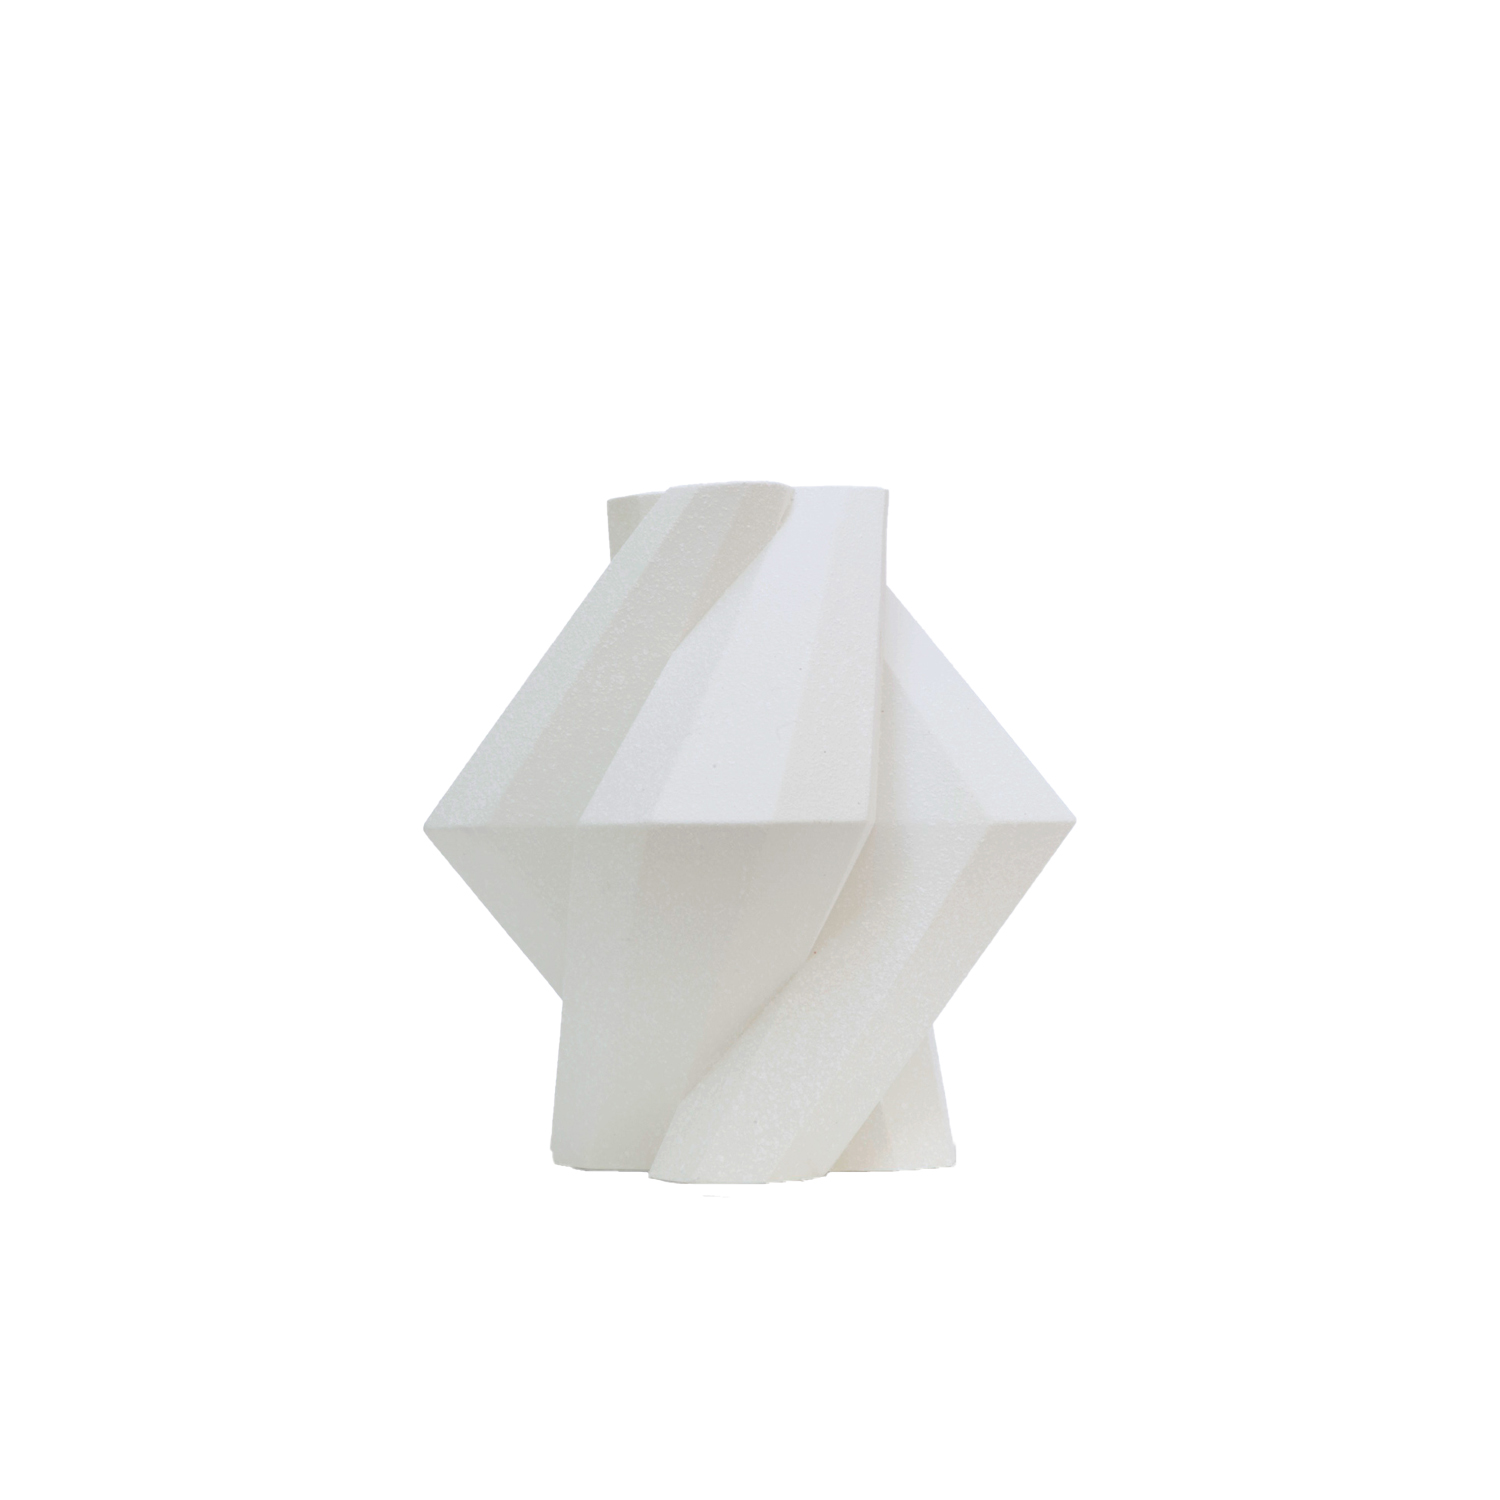 Fortress Pillar Vase White - Designer Lara Bohinc explores the marriage of ancient and futuristic form in the new Fortress Vase range, which has created a more complex geometric and modern structure from the original inspiration of the octagonal towers at the Diocletian Palace in Croatia. The resulting hexagonal blocks interlock and embrace to allow the play of light and shade on the many surfaces and angles. There are four Fortress shapes: the larger Column and Castle (45cm height), the Pillar (30cm height) and the Tower vase (37cm height). These are hand made from ceramic in a small Italian artisanal workshop and come in three finishes: dark gold, bronze and speckled white.  | Matter of Stuff